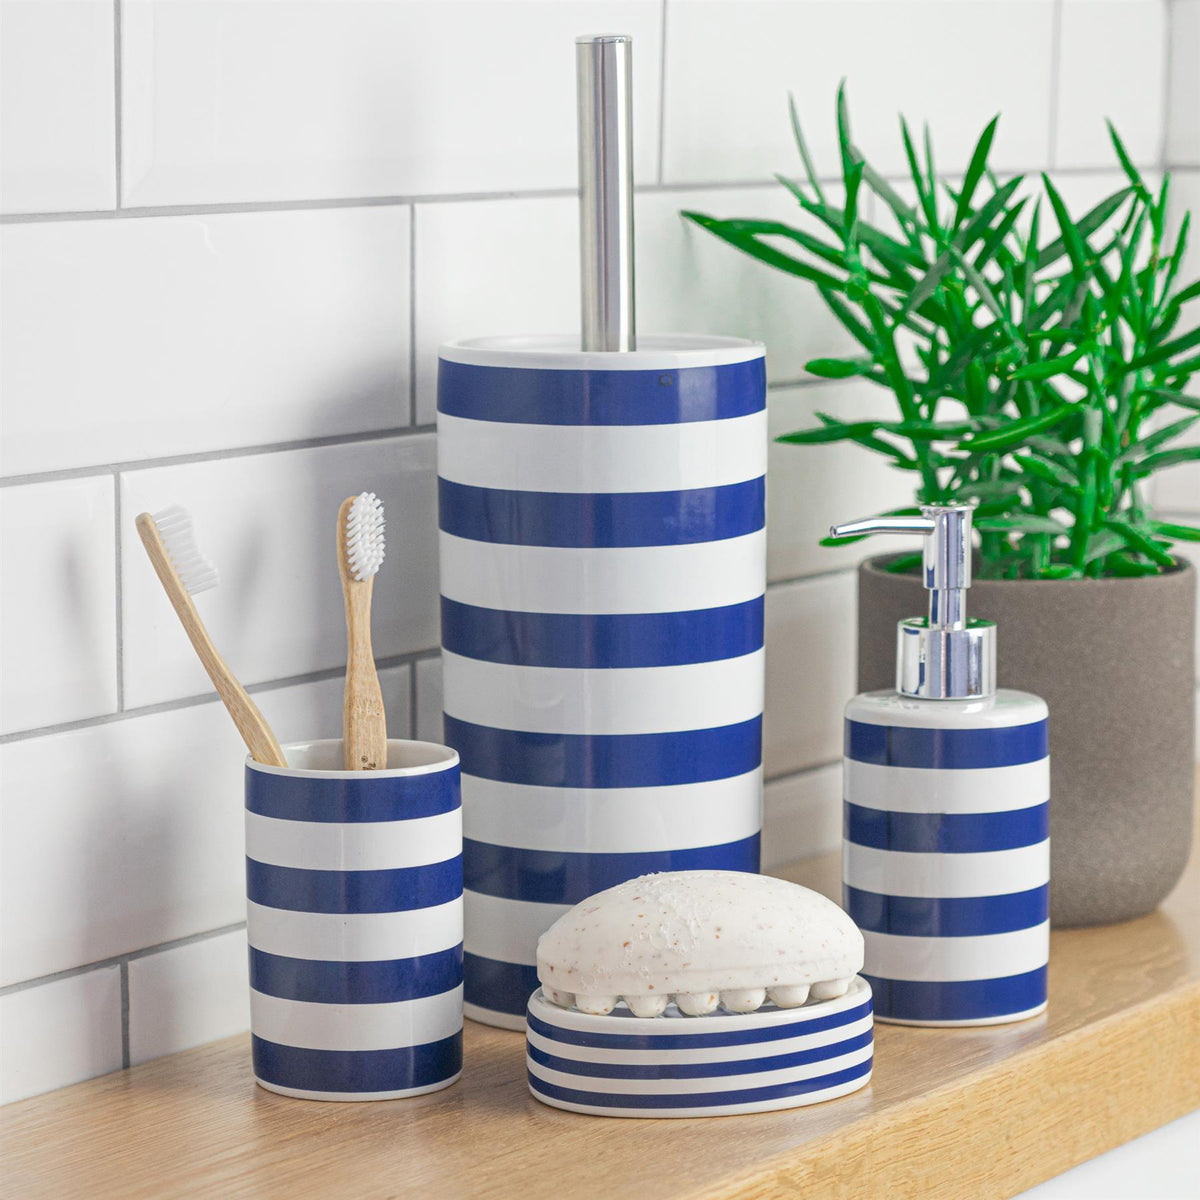 Harbour Housewares Ceramic Soap Saver Dish - Blue and White